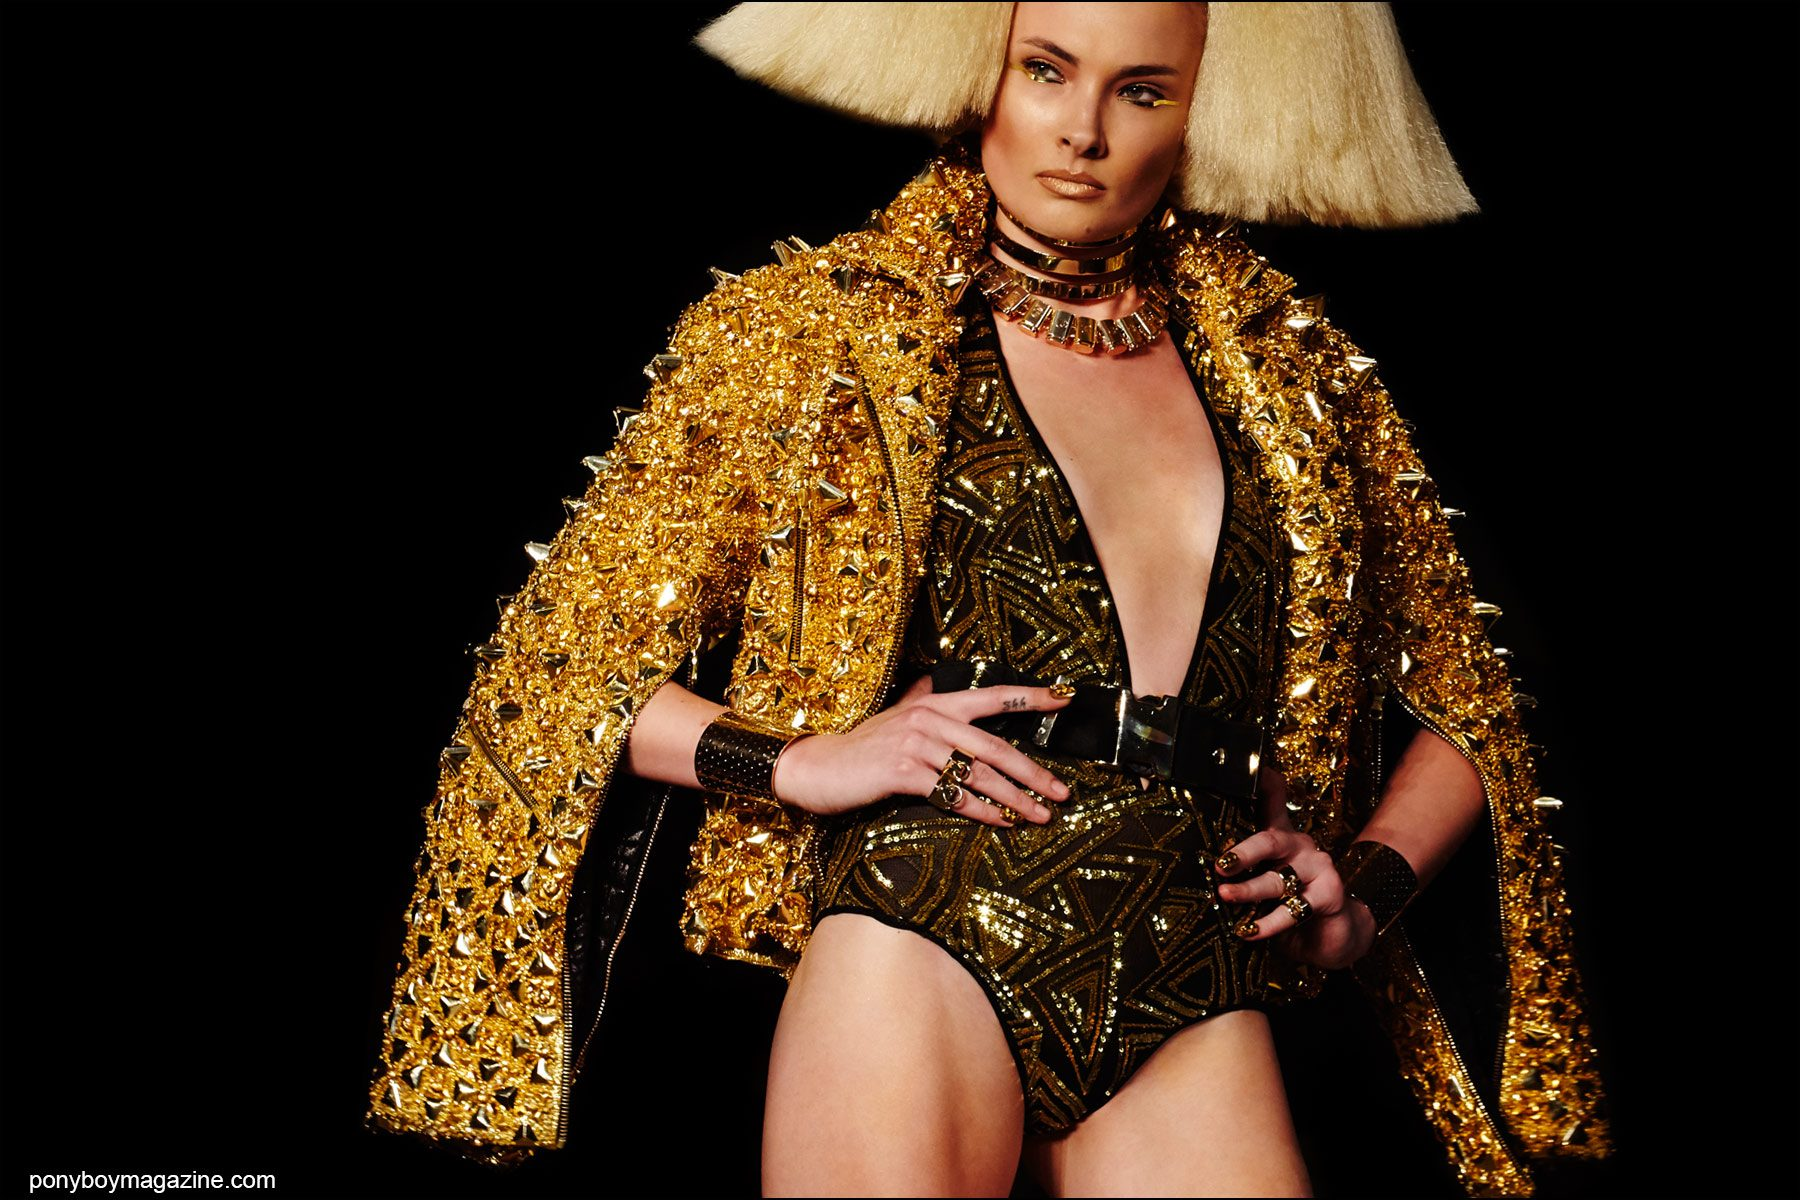 A glamorous gold motorcycle jacket from the Blonds Spring/Summer 2016 runway show. Photography by Alexander Thompson for Ponyboy magazine NY.